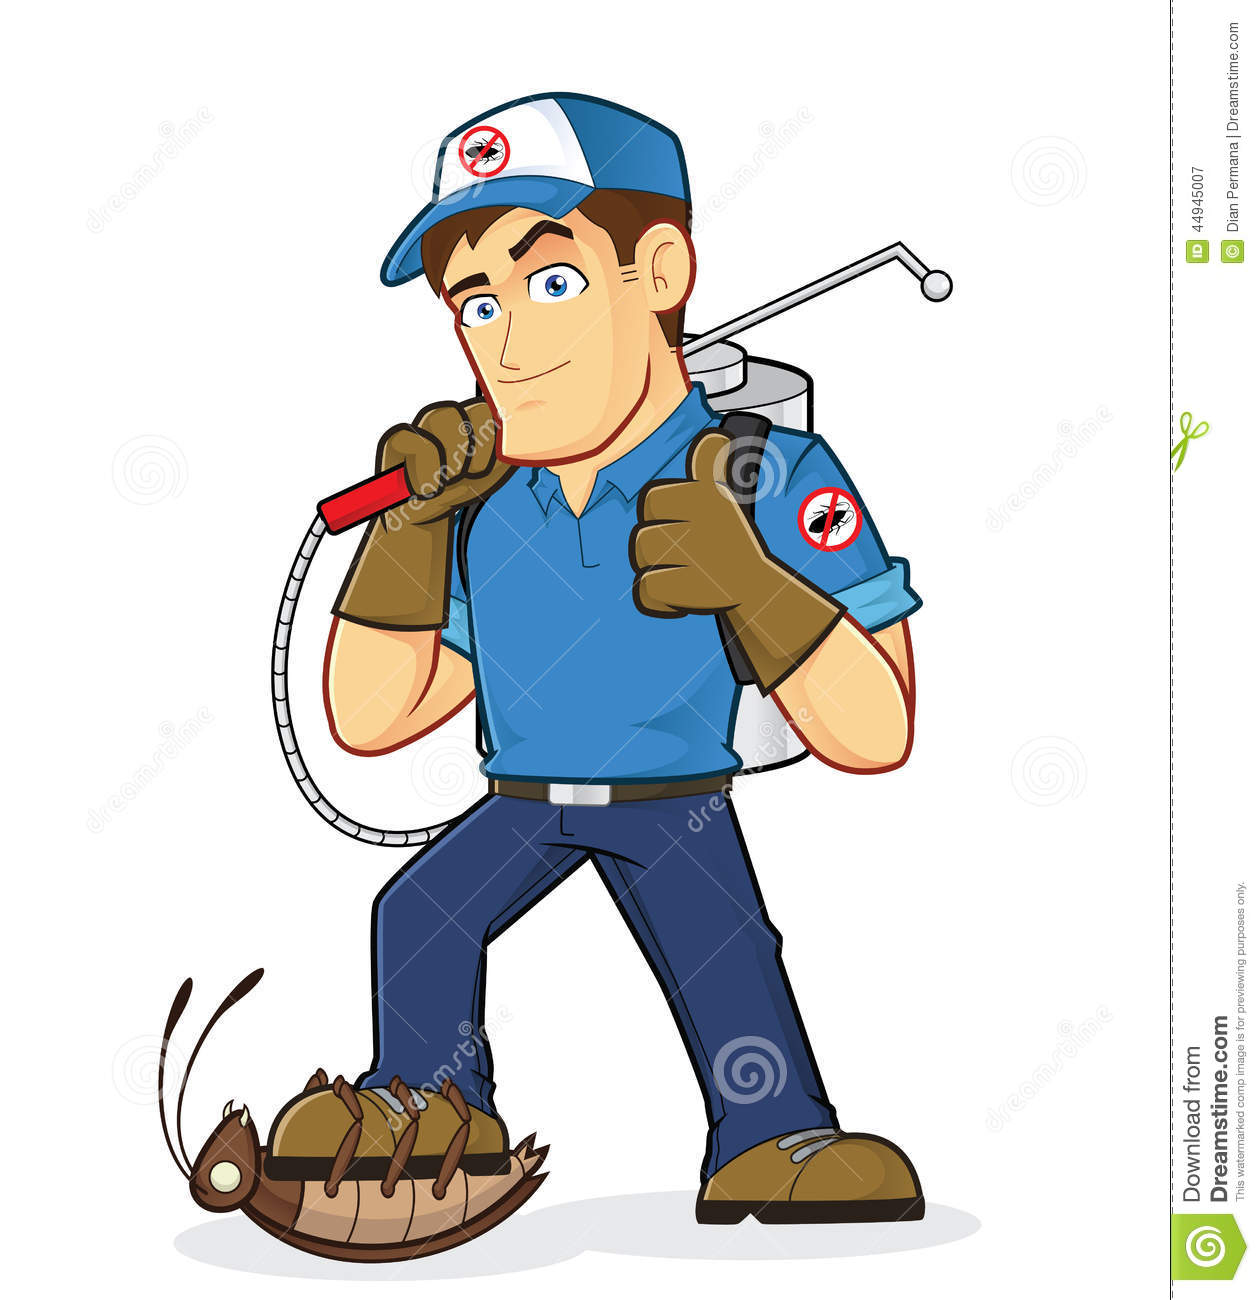 extermination-clipart-exterminator-pest-control-clipart-picture-cartoon-character-44945007.jpg